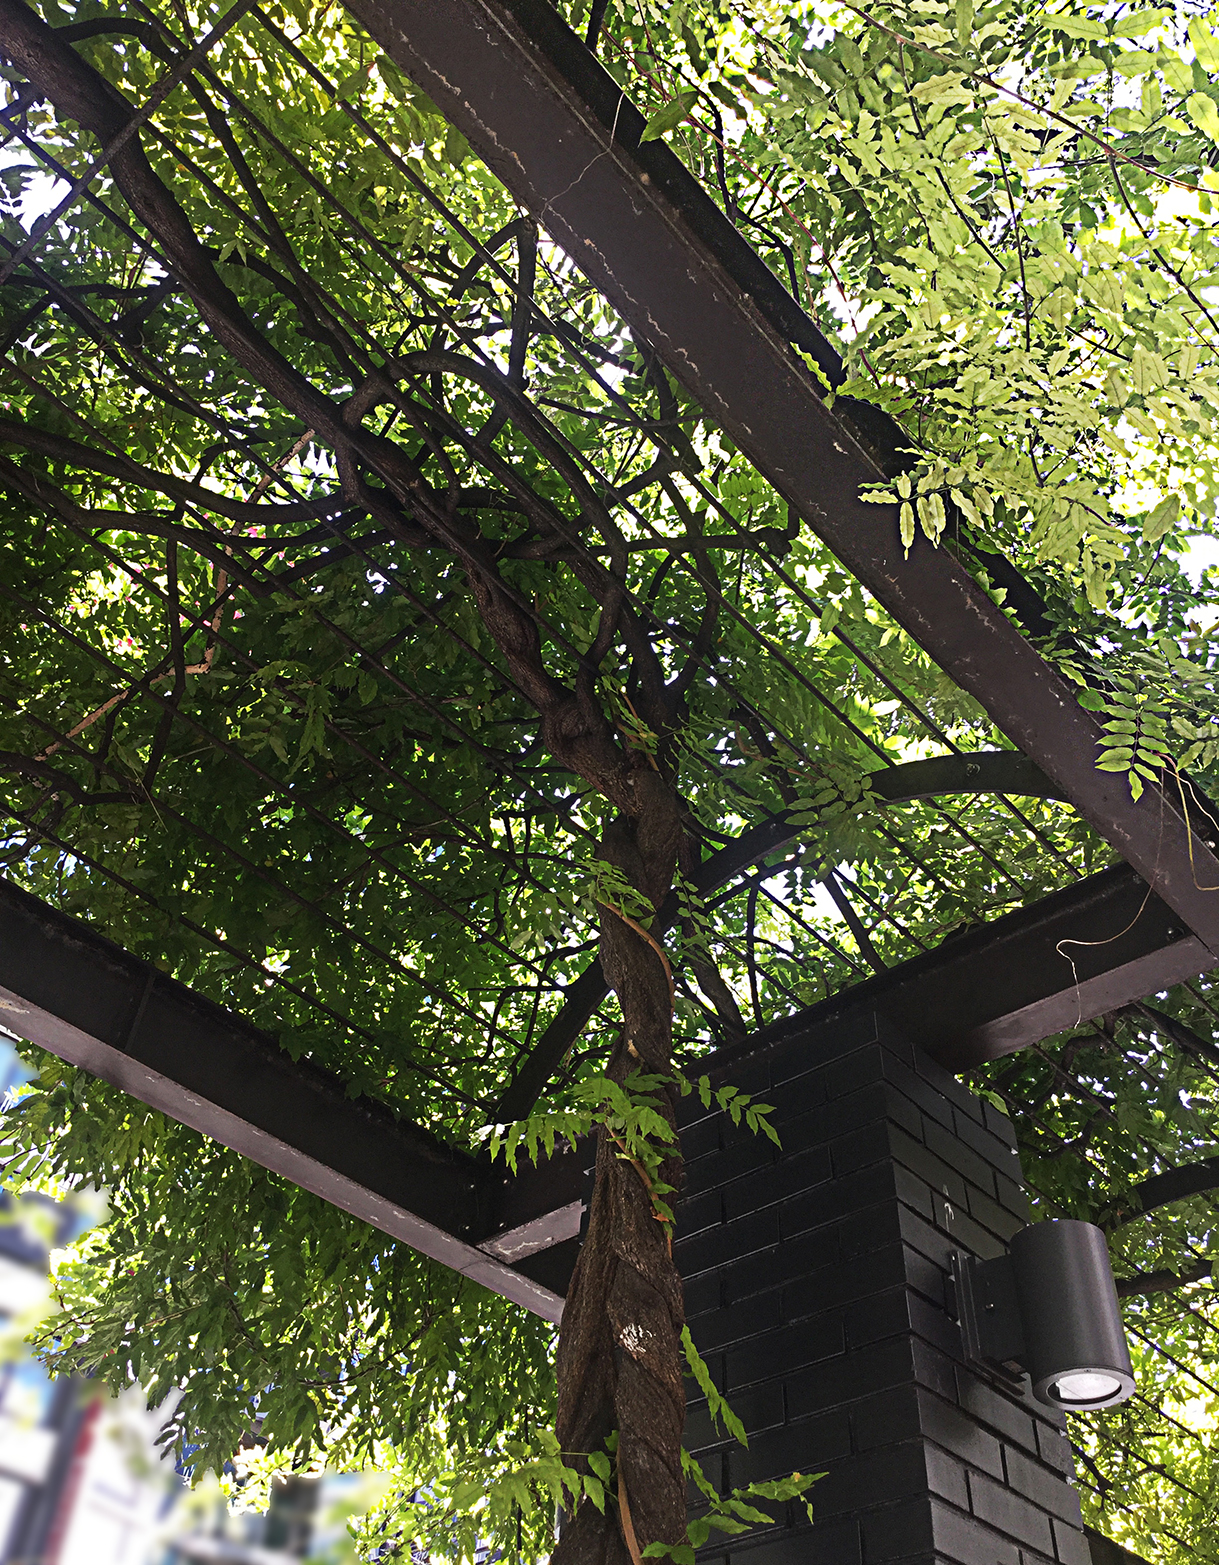 looking up through the solid support frame of a green wisteria canopy.